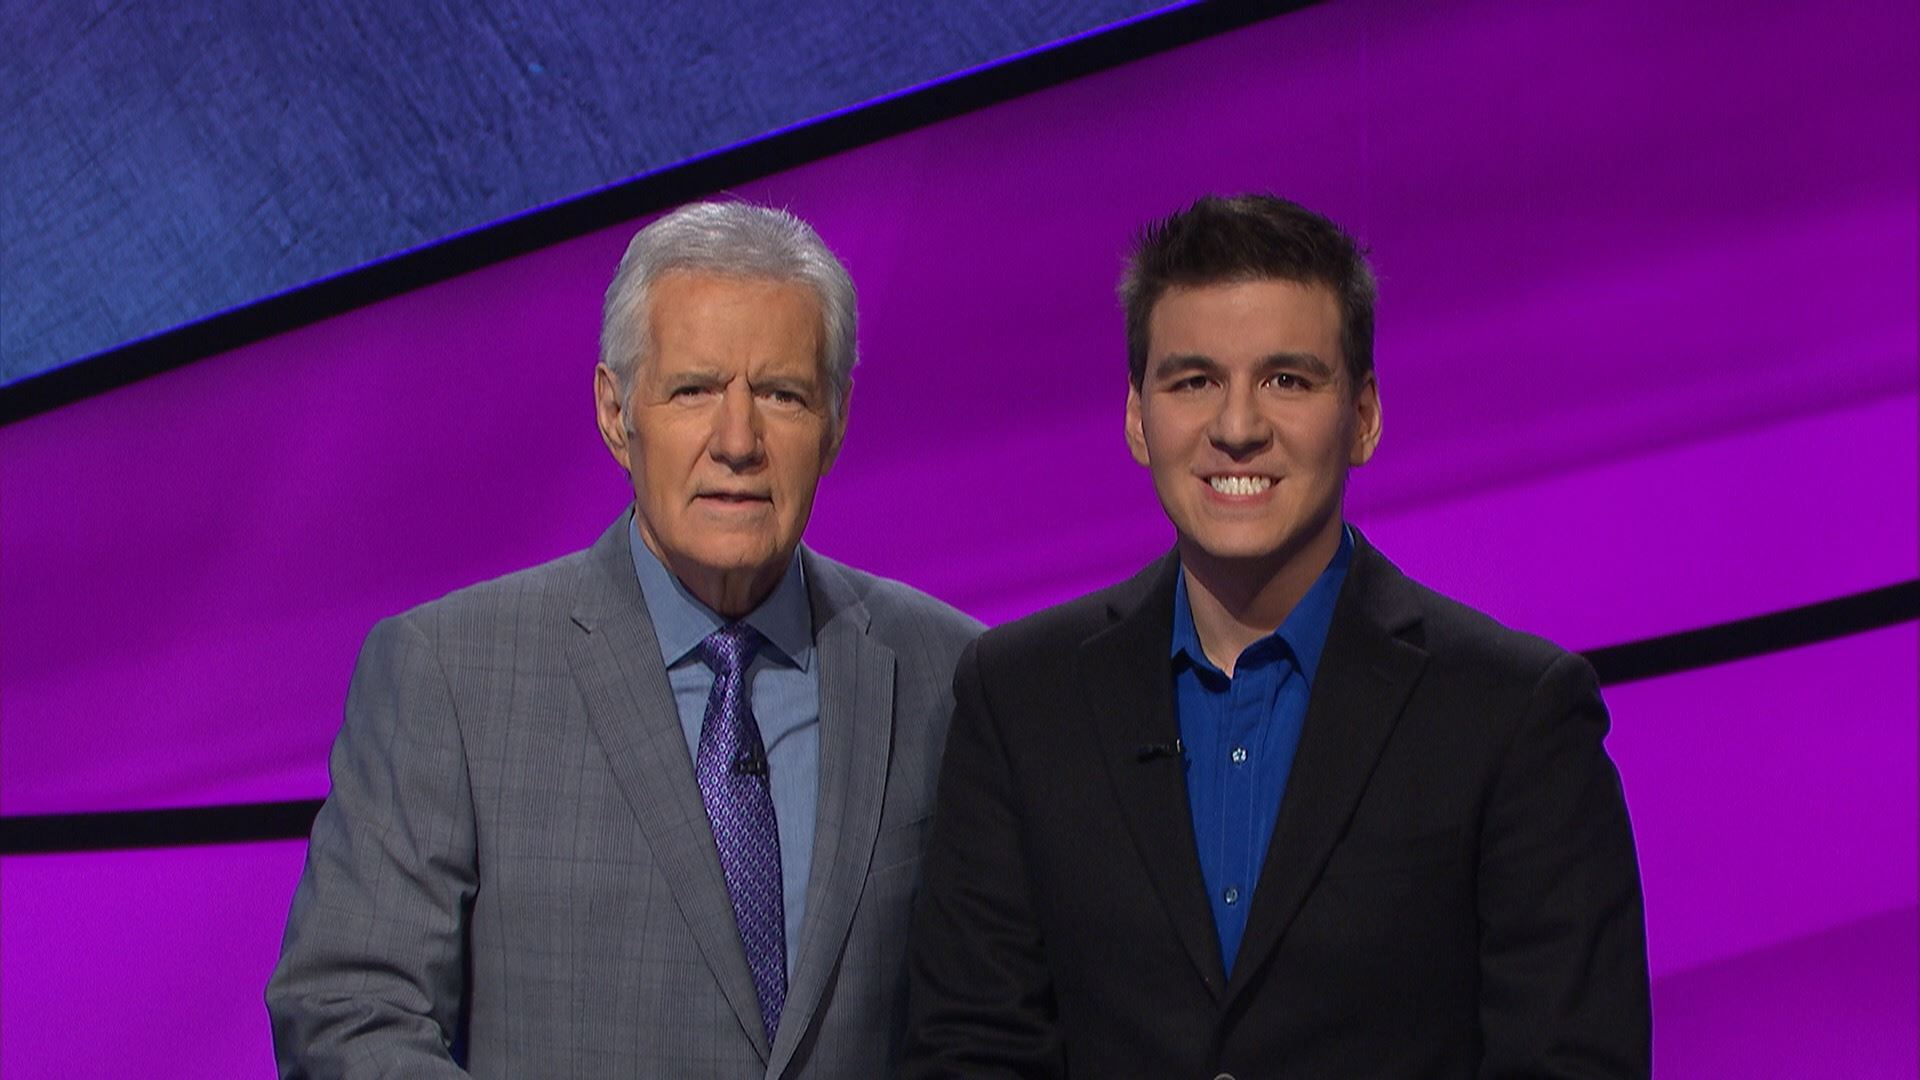 James Holzhauer: Jeopardy champion interview on sports gambling